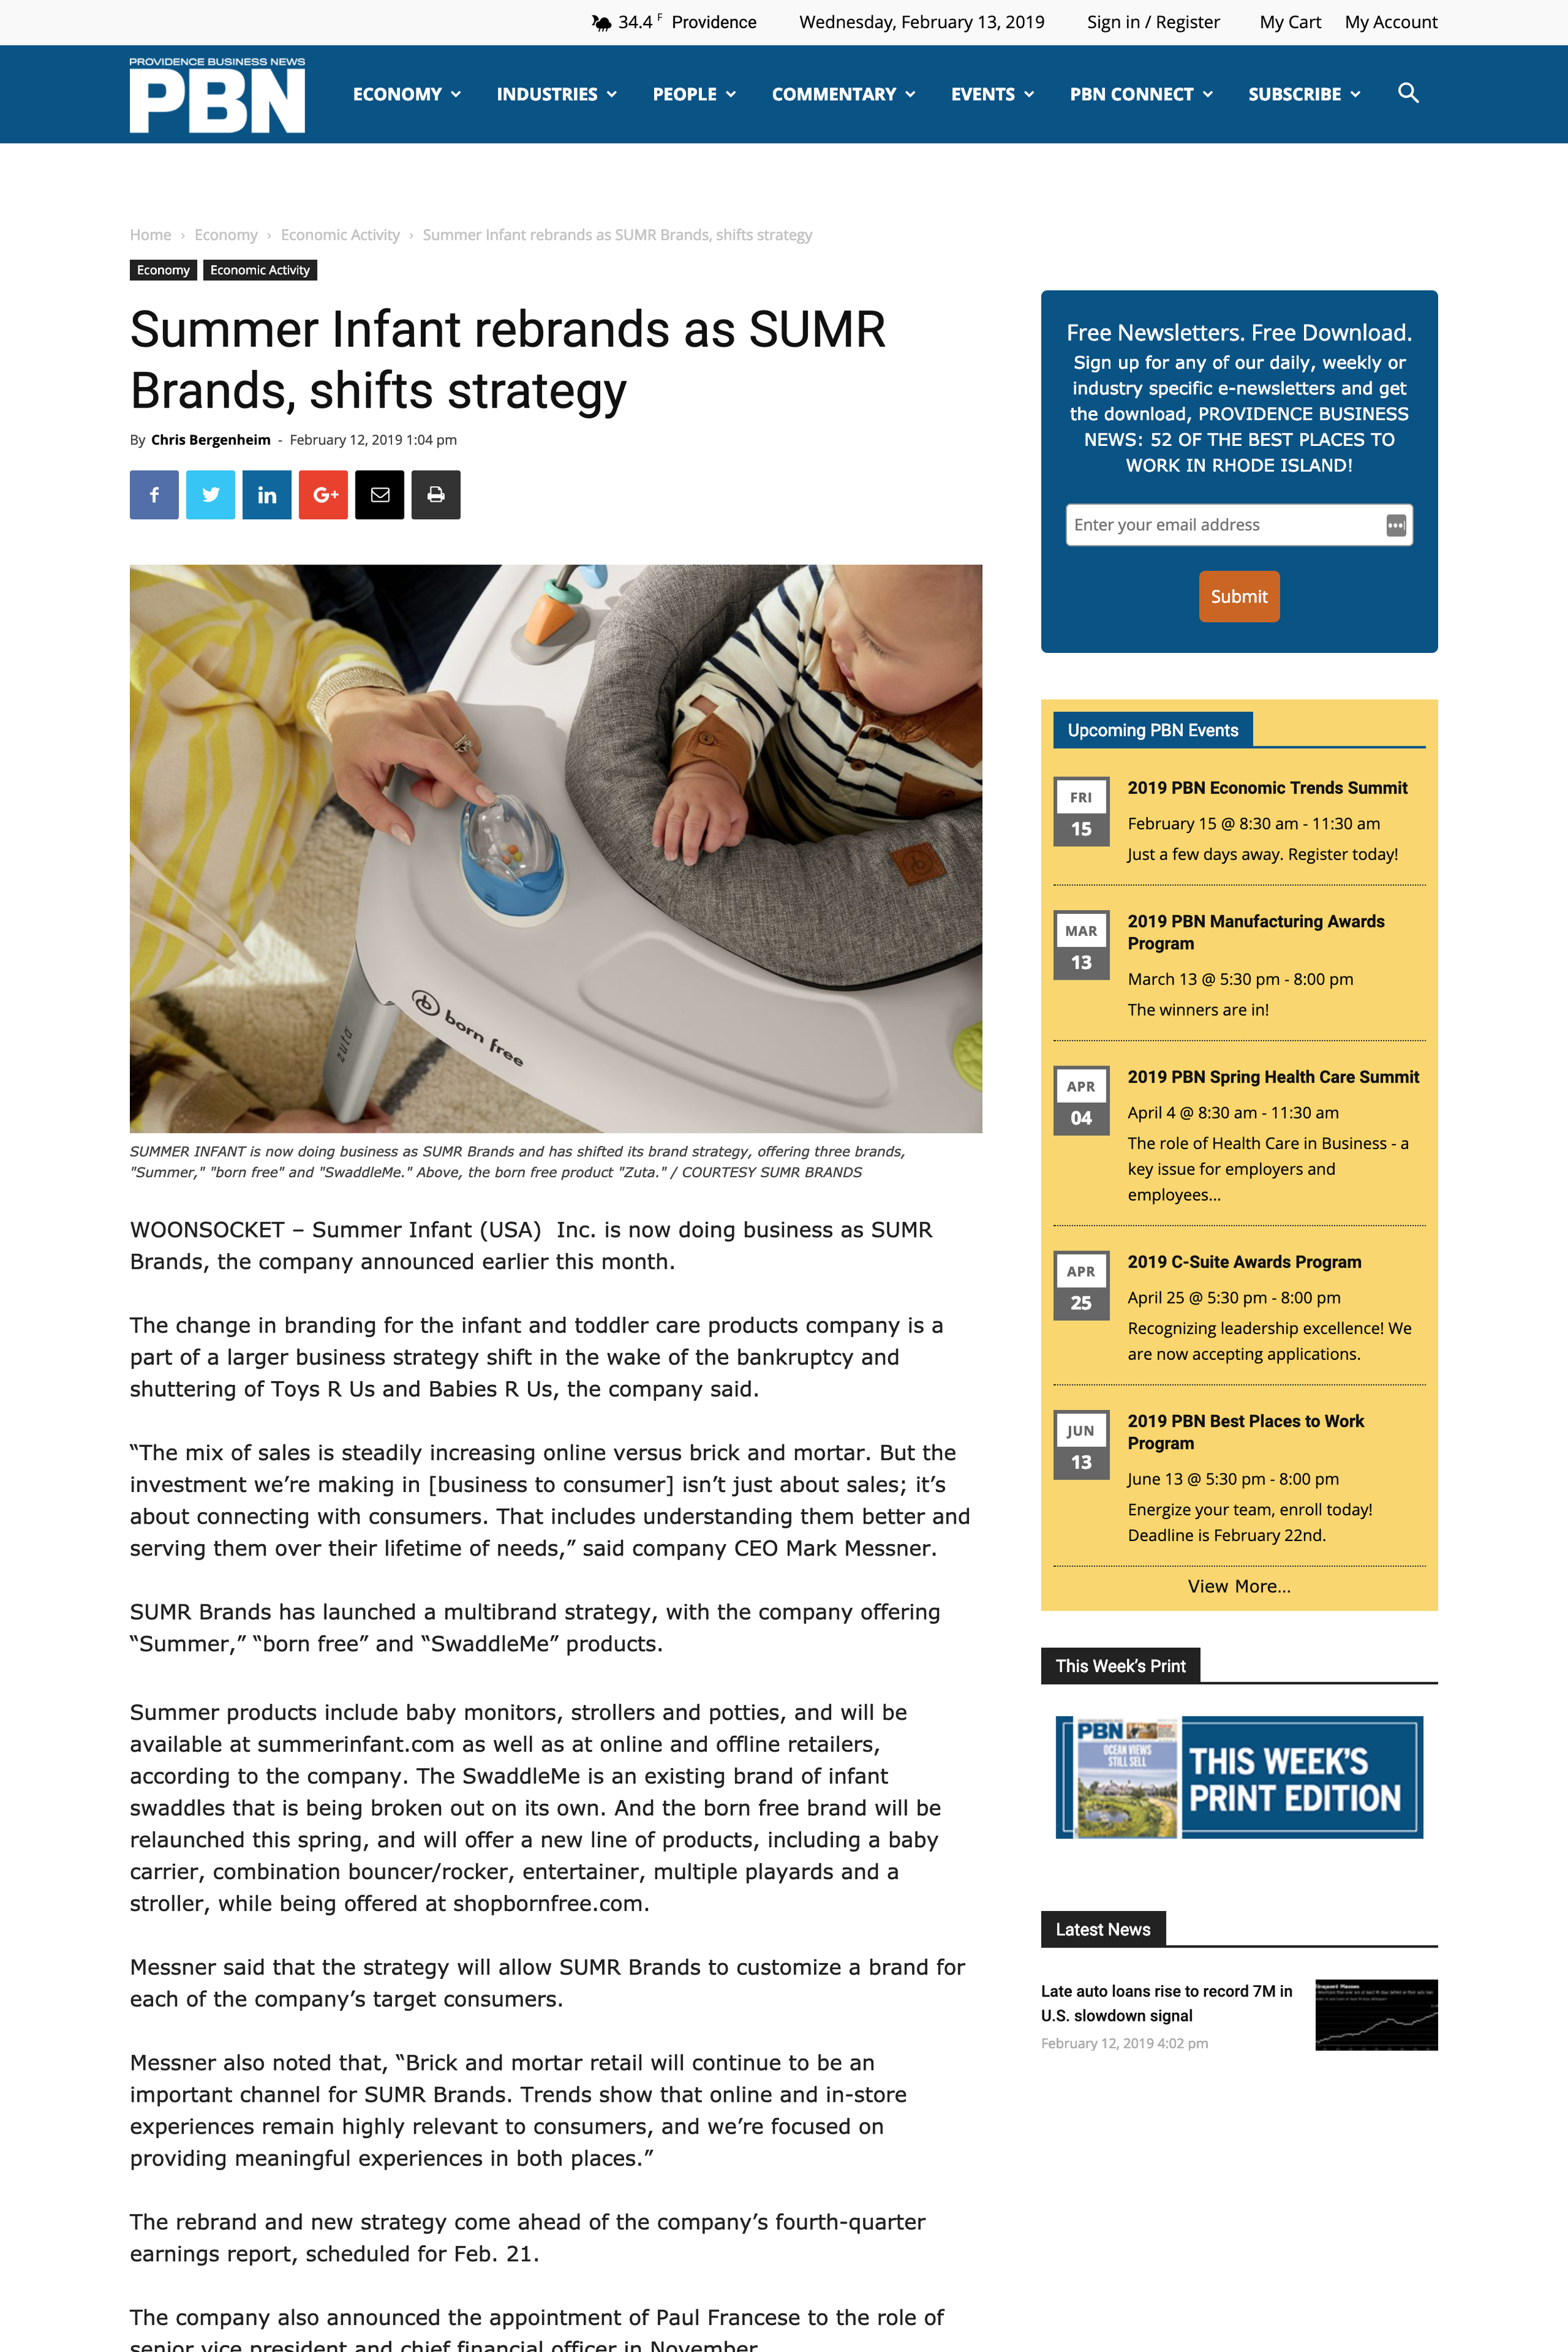 2019.02.12_Providence Business News Online_SUMB Brands Corporate_cropped 2x3.png